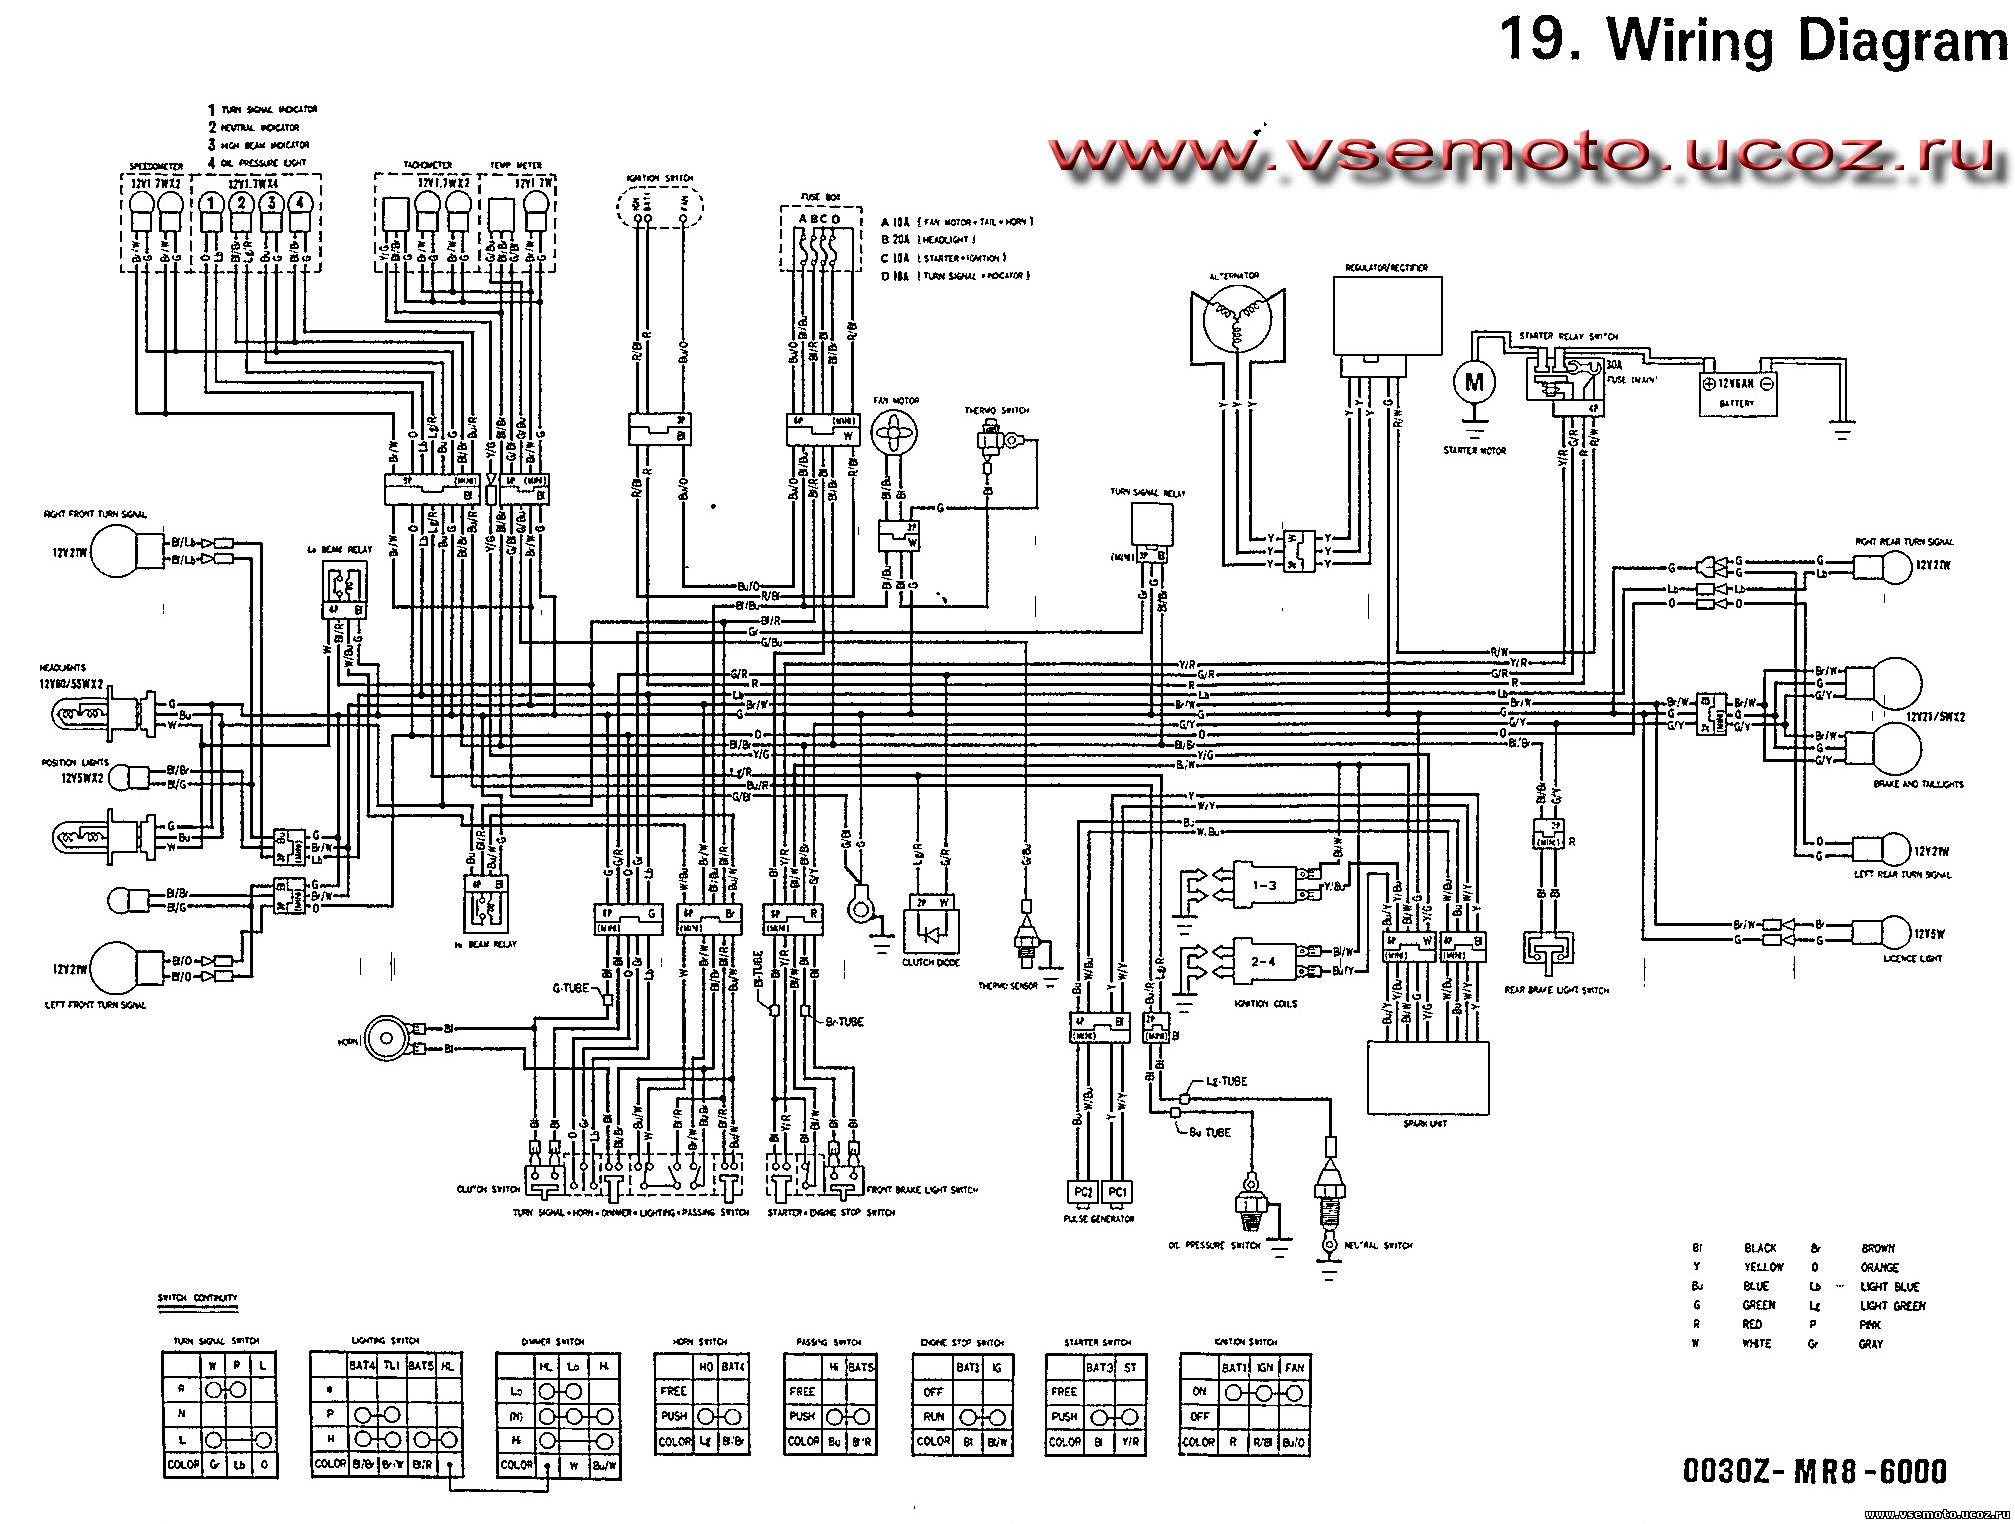 Yamaha R6 Wiring - Schematics Online on